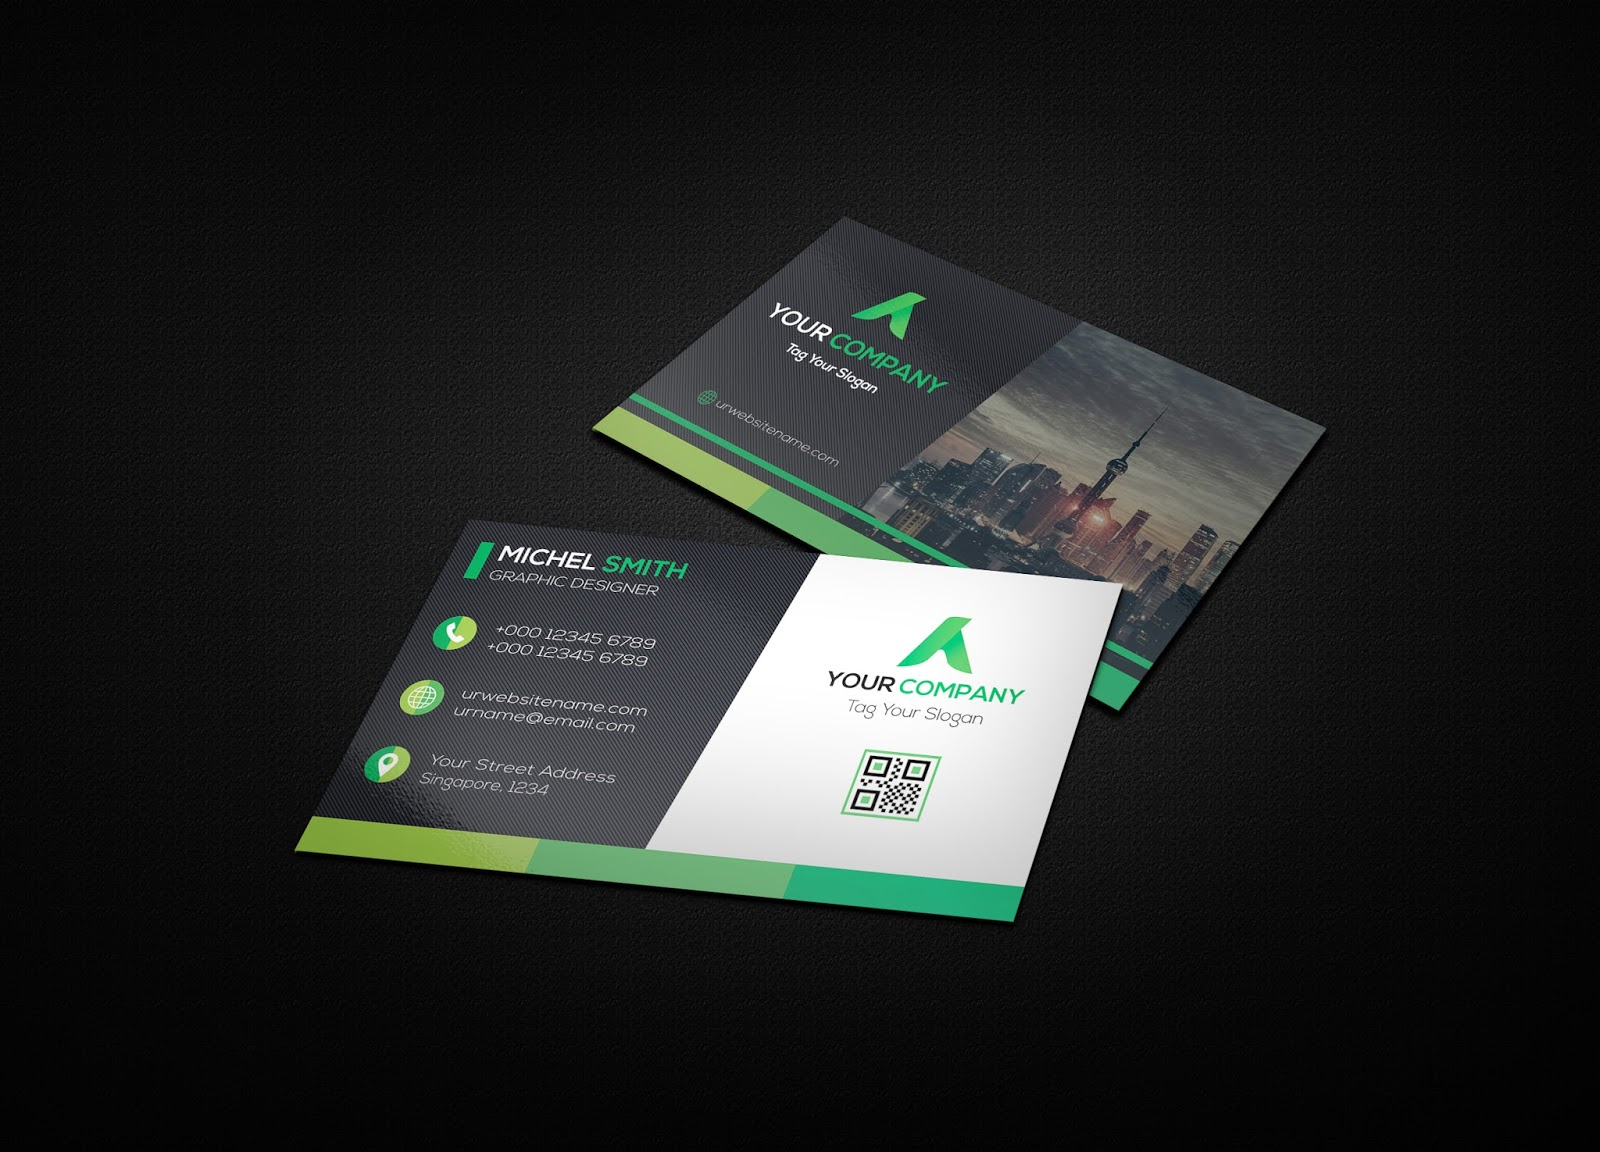 50+ Best Free High-Quality PSD Business Card Mockups | Top ...